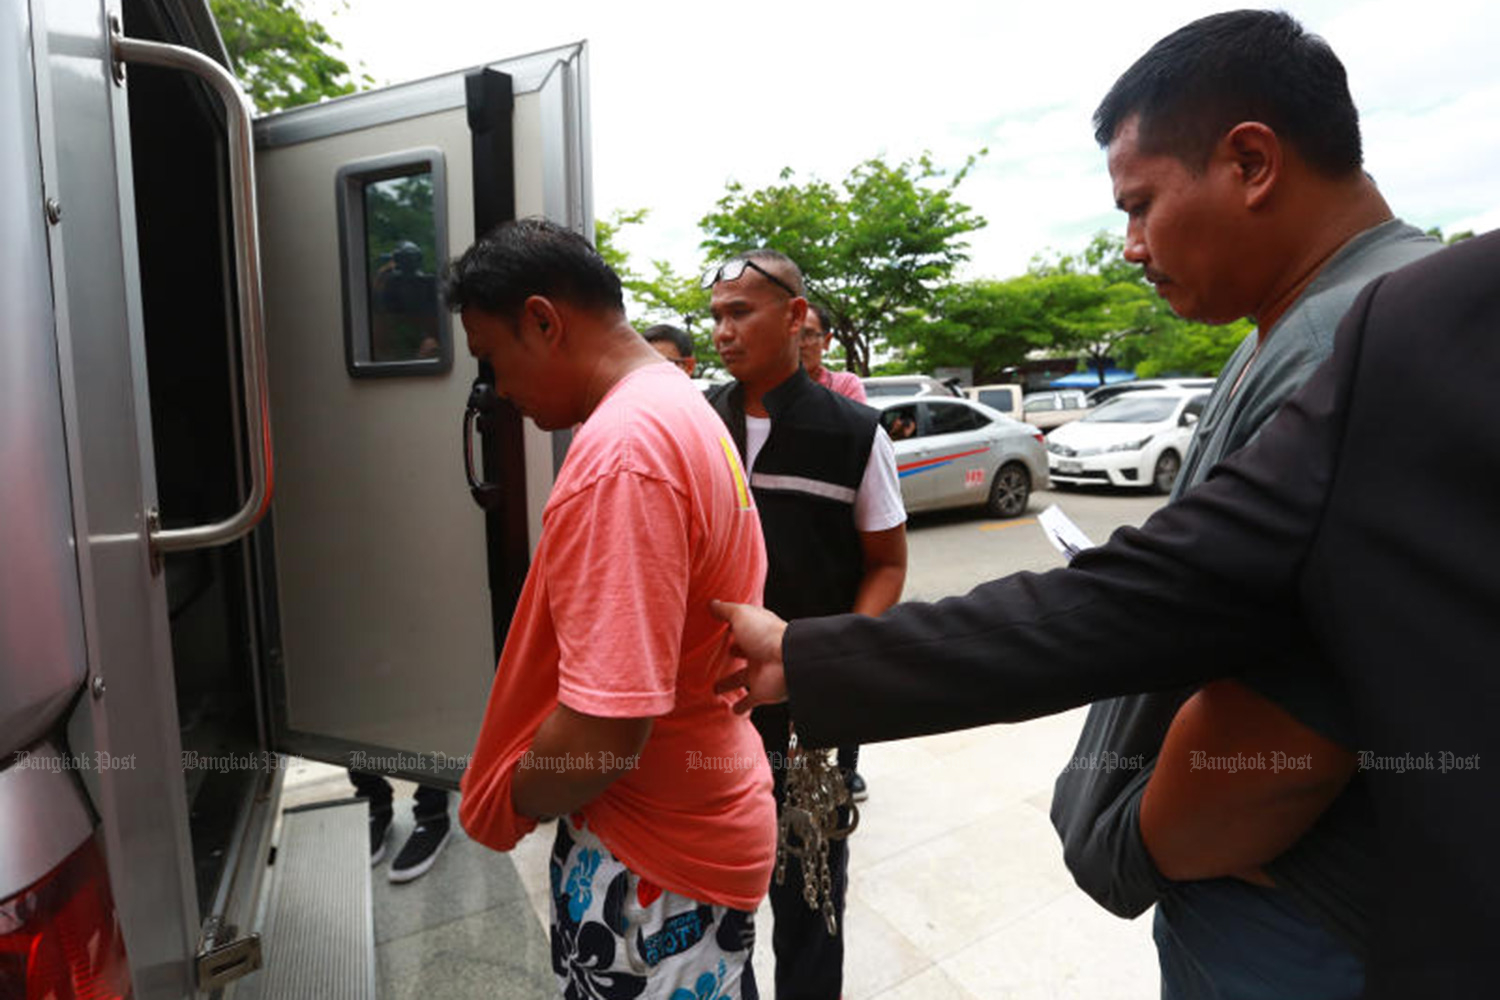 Leader of motorcycle-taxi group surrenders